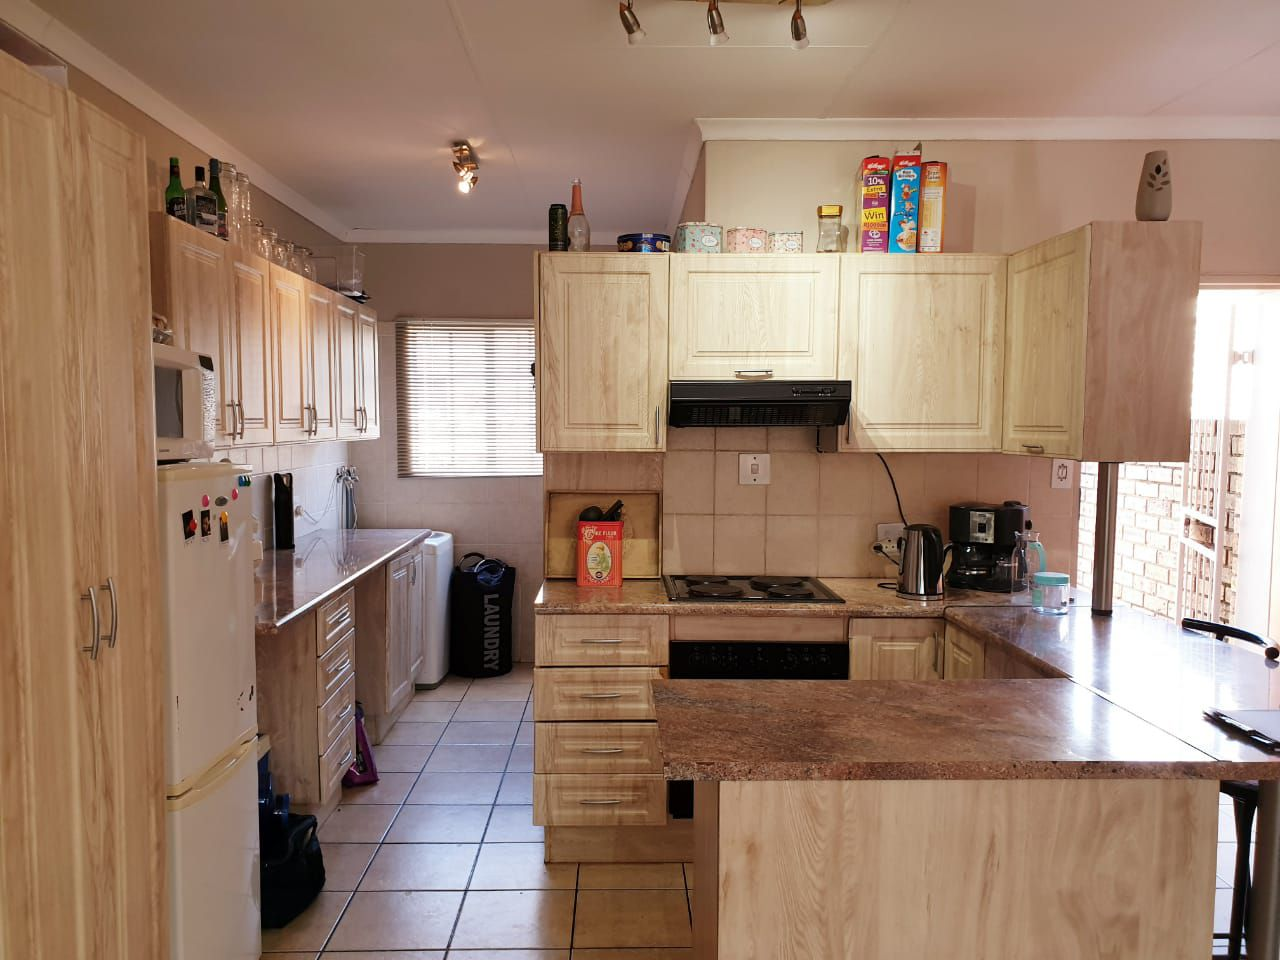 House in Bult - WhatsApp Image 2019-08-26 at 15.11.30 (3).jpeg